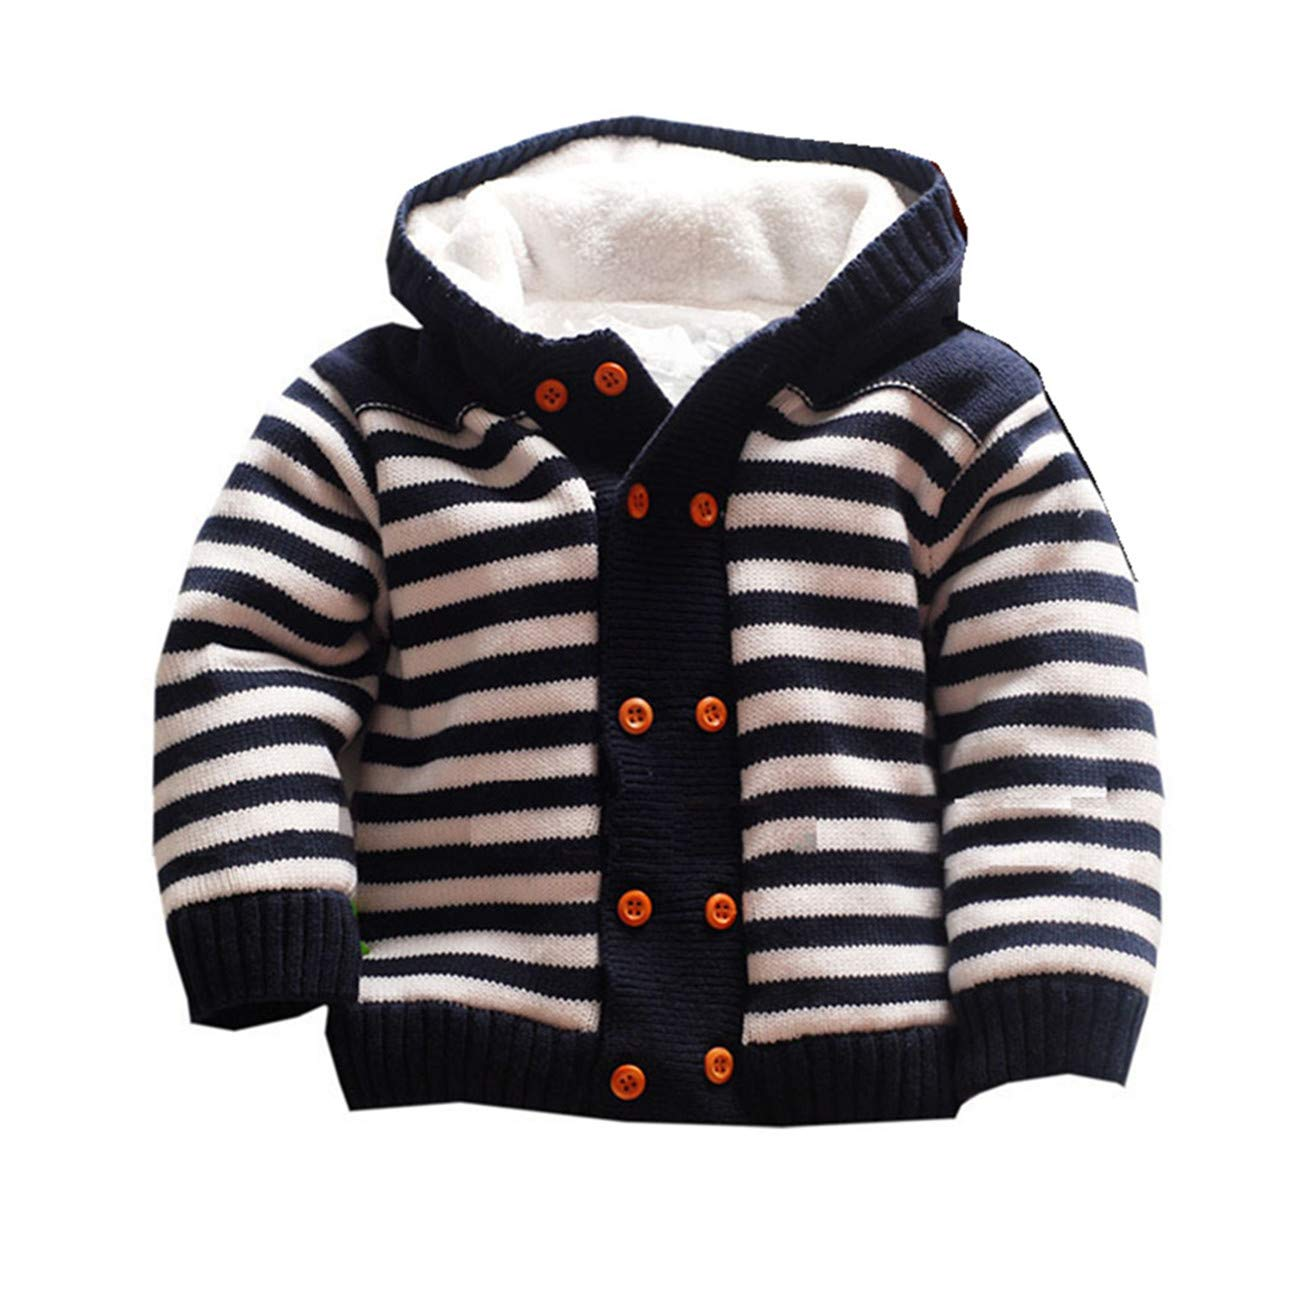 Dealone Baby Boys Hooded Cardigan Jacket Long Sleeve Striped Knitted Sweater Toddler Winter Warm Outerwear Navy by Dealone